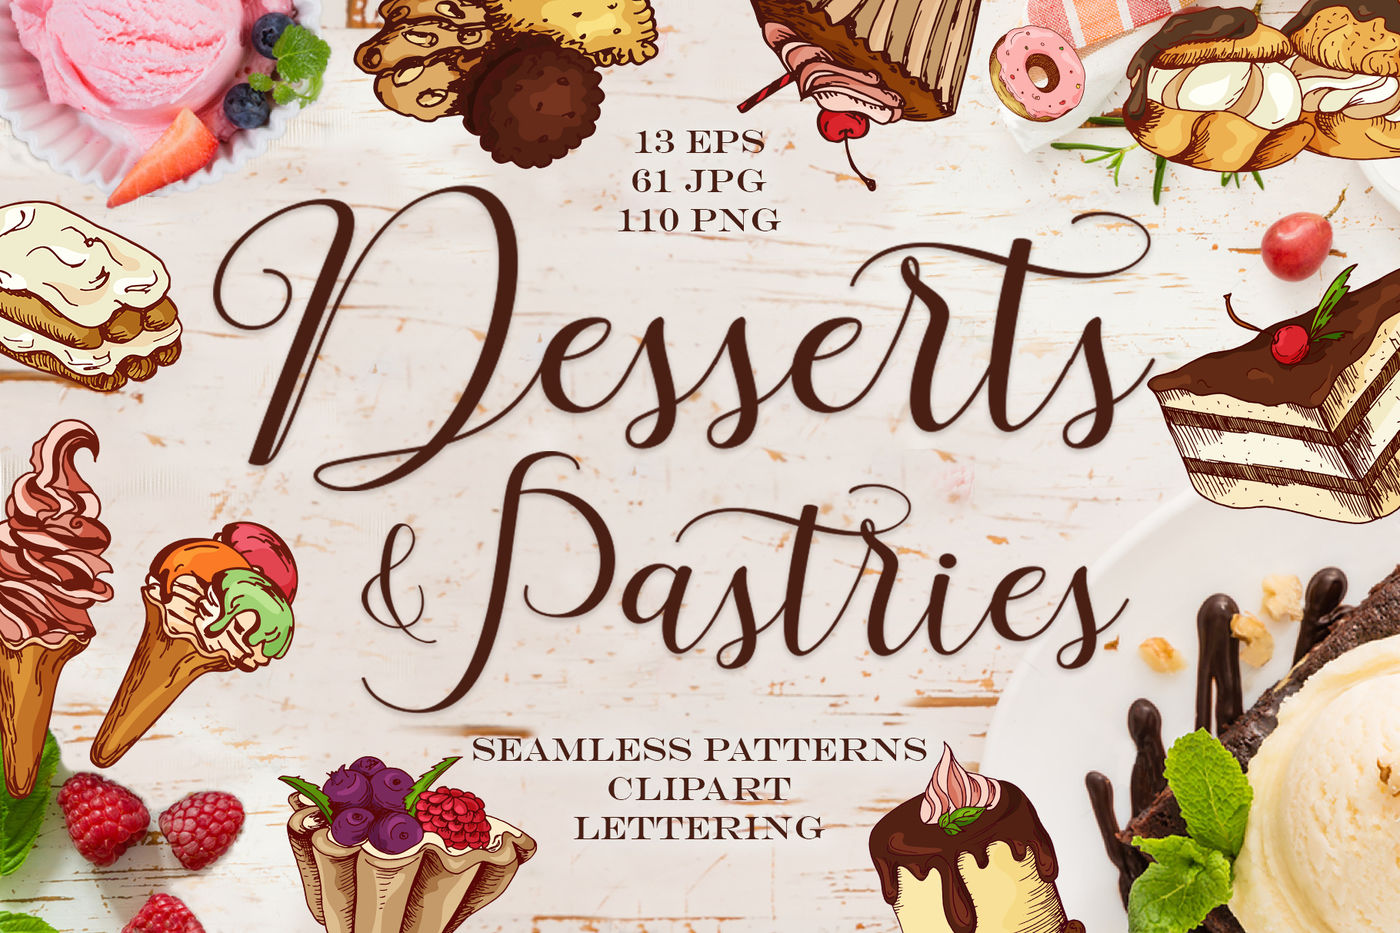 Desserts Pastries Clipart Lettering By Astartejulia